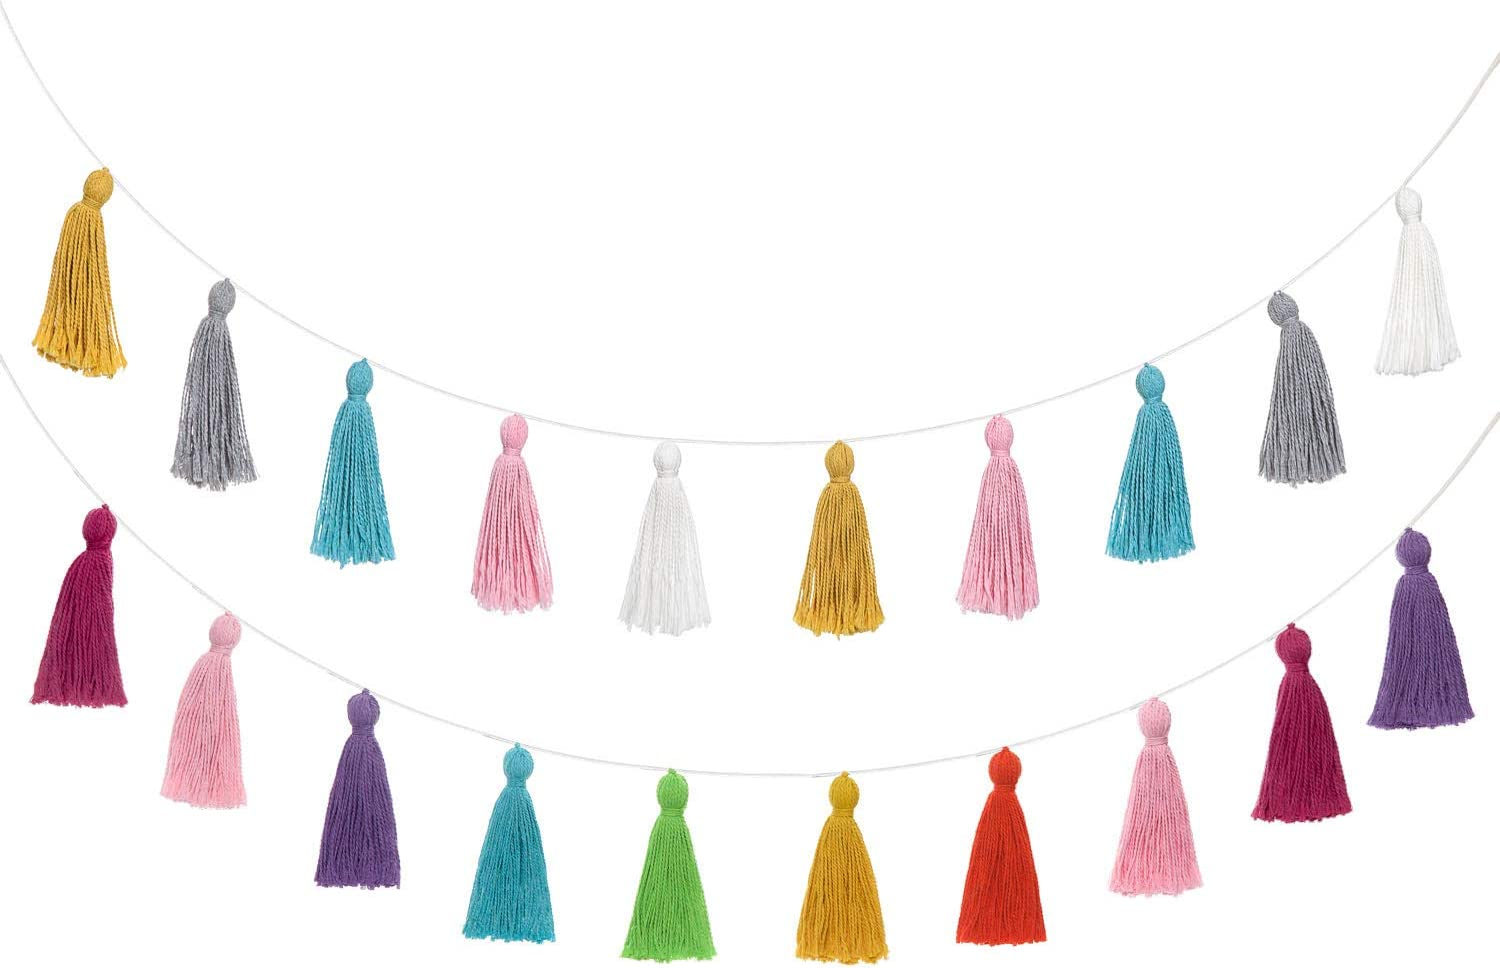 Mkono 2 Pack Cotton Tassel Garland Colored Tassels Banner Christmas Decorative Wall Hangings for Boho Home Decor,Xmas Tree Decorations Ornament, Holiday Party, Baby Shower, Nursey Dorm Room